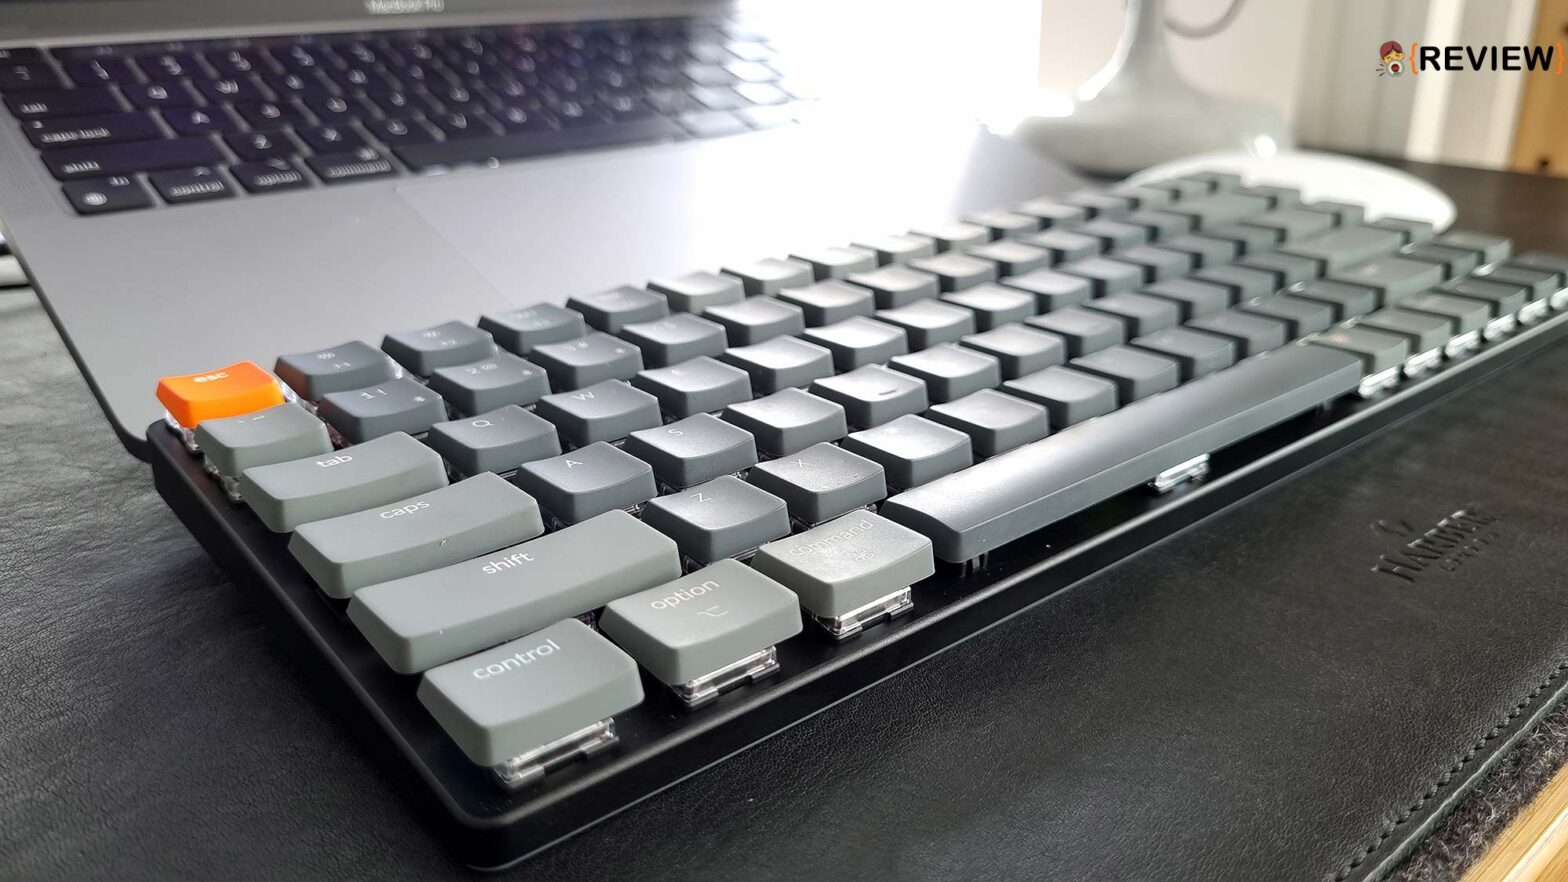 Keychron K3 Ultra-slim Mechanical Keyboard Review